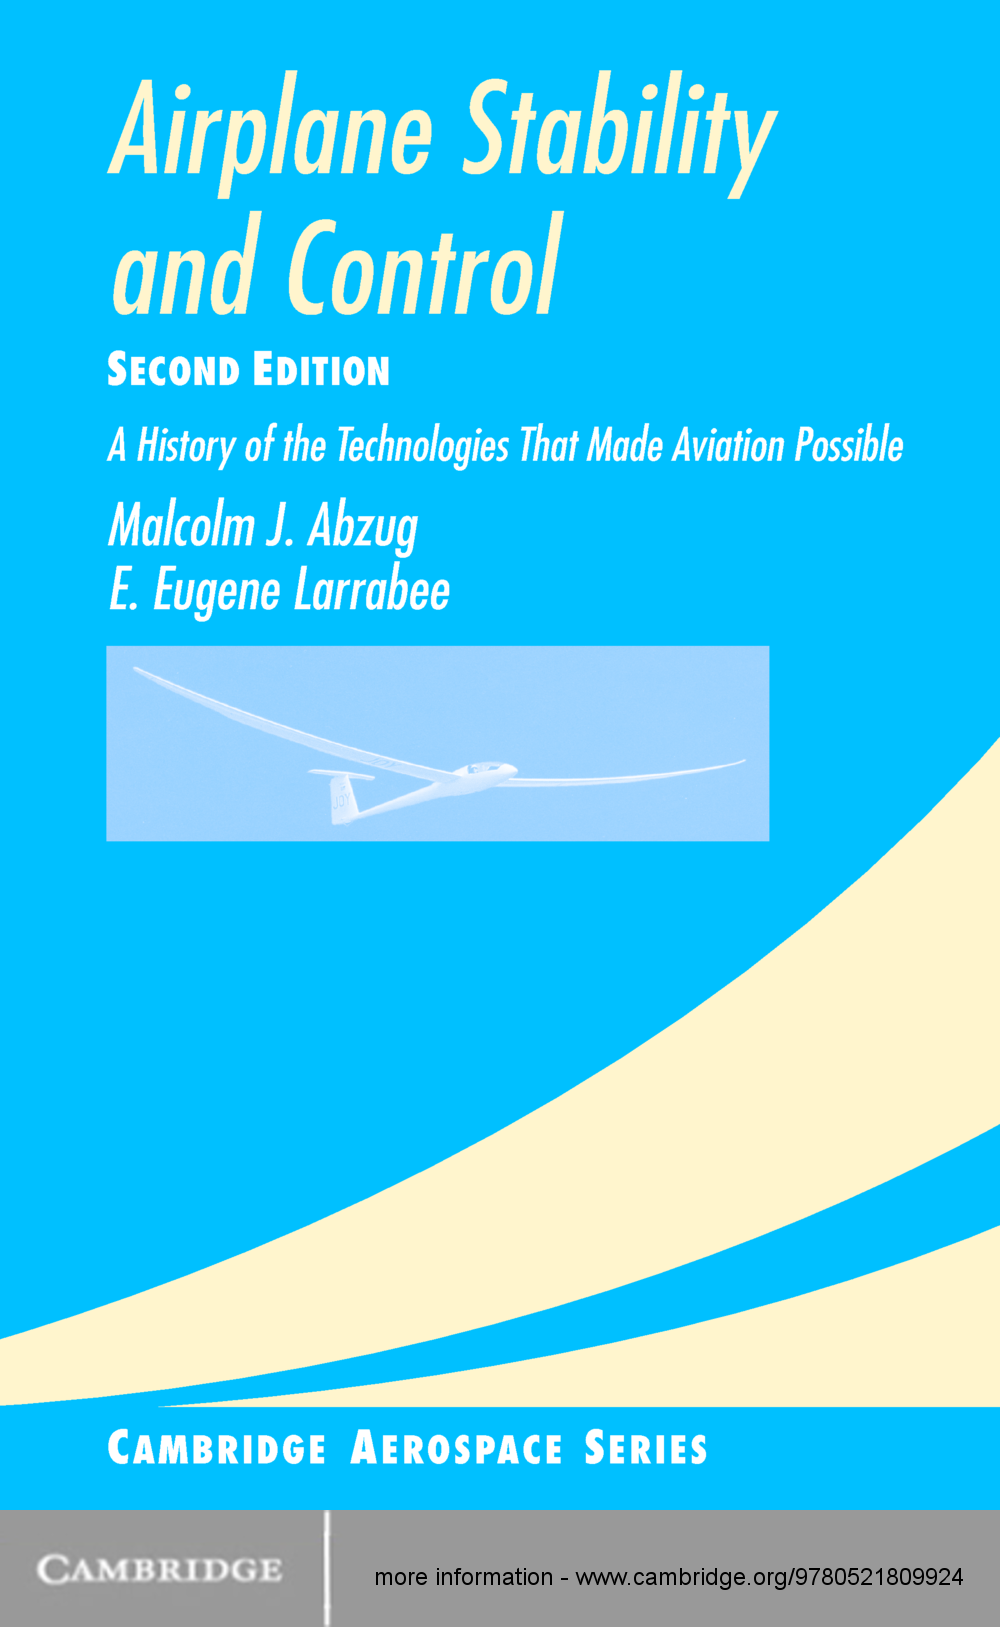 Airplane Stability and Control A History of the Technologies that Made Aviation Possible